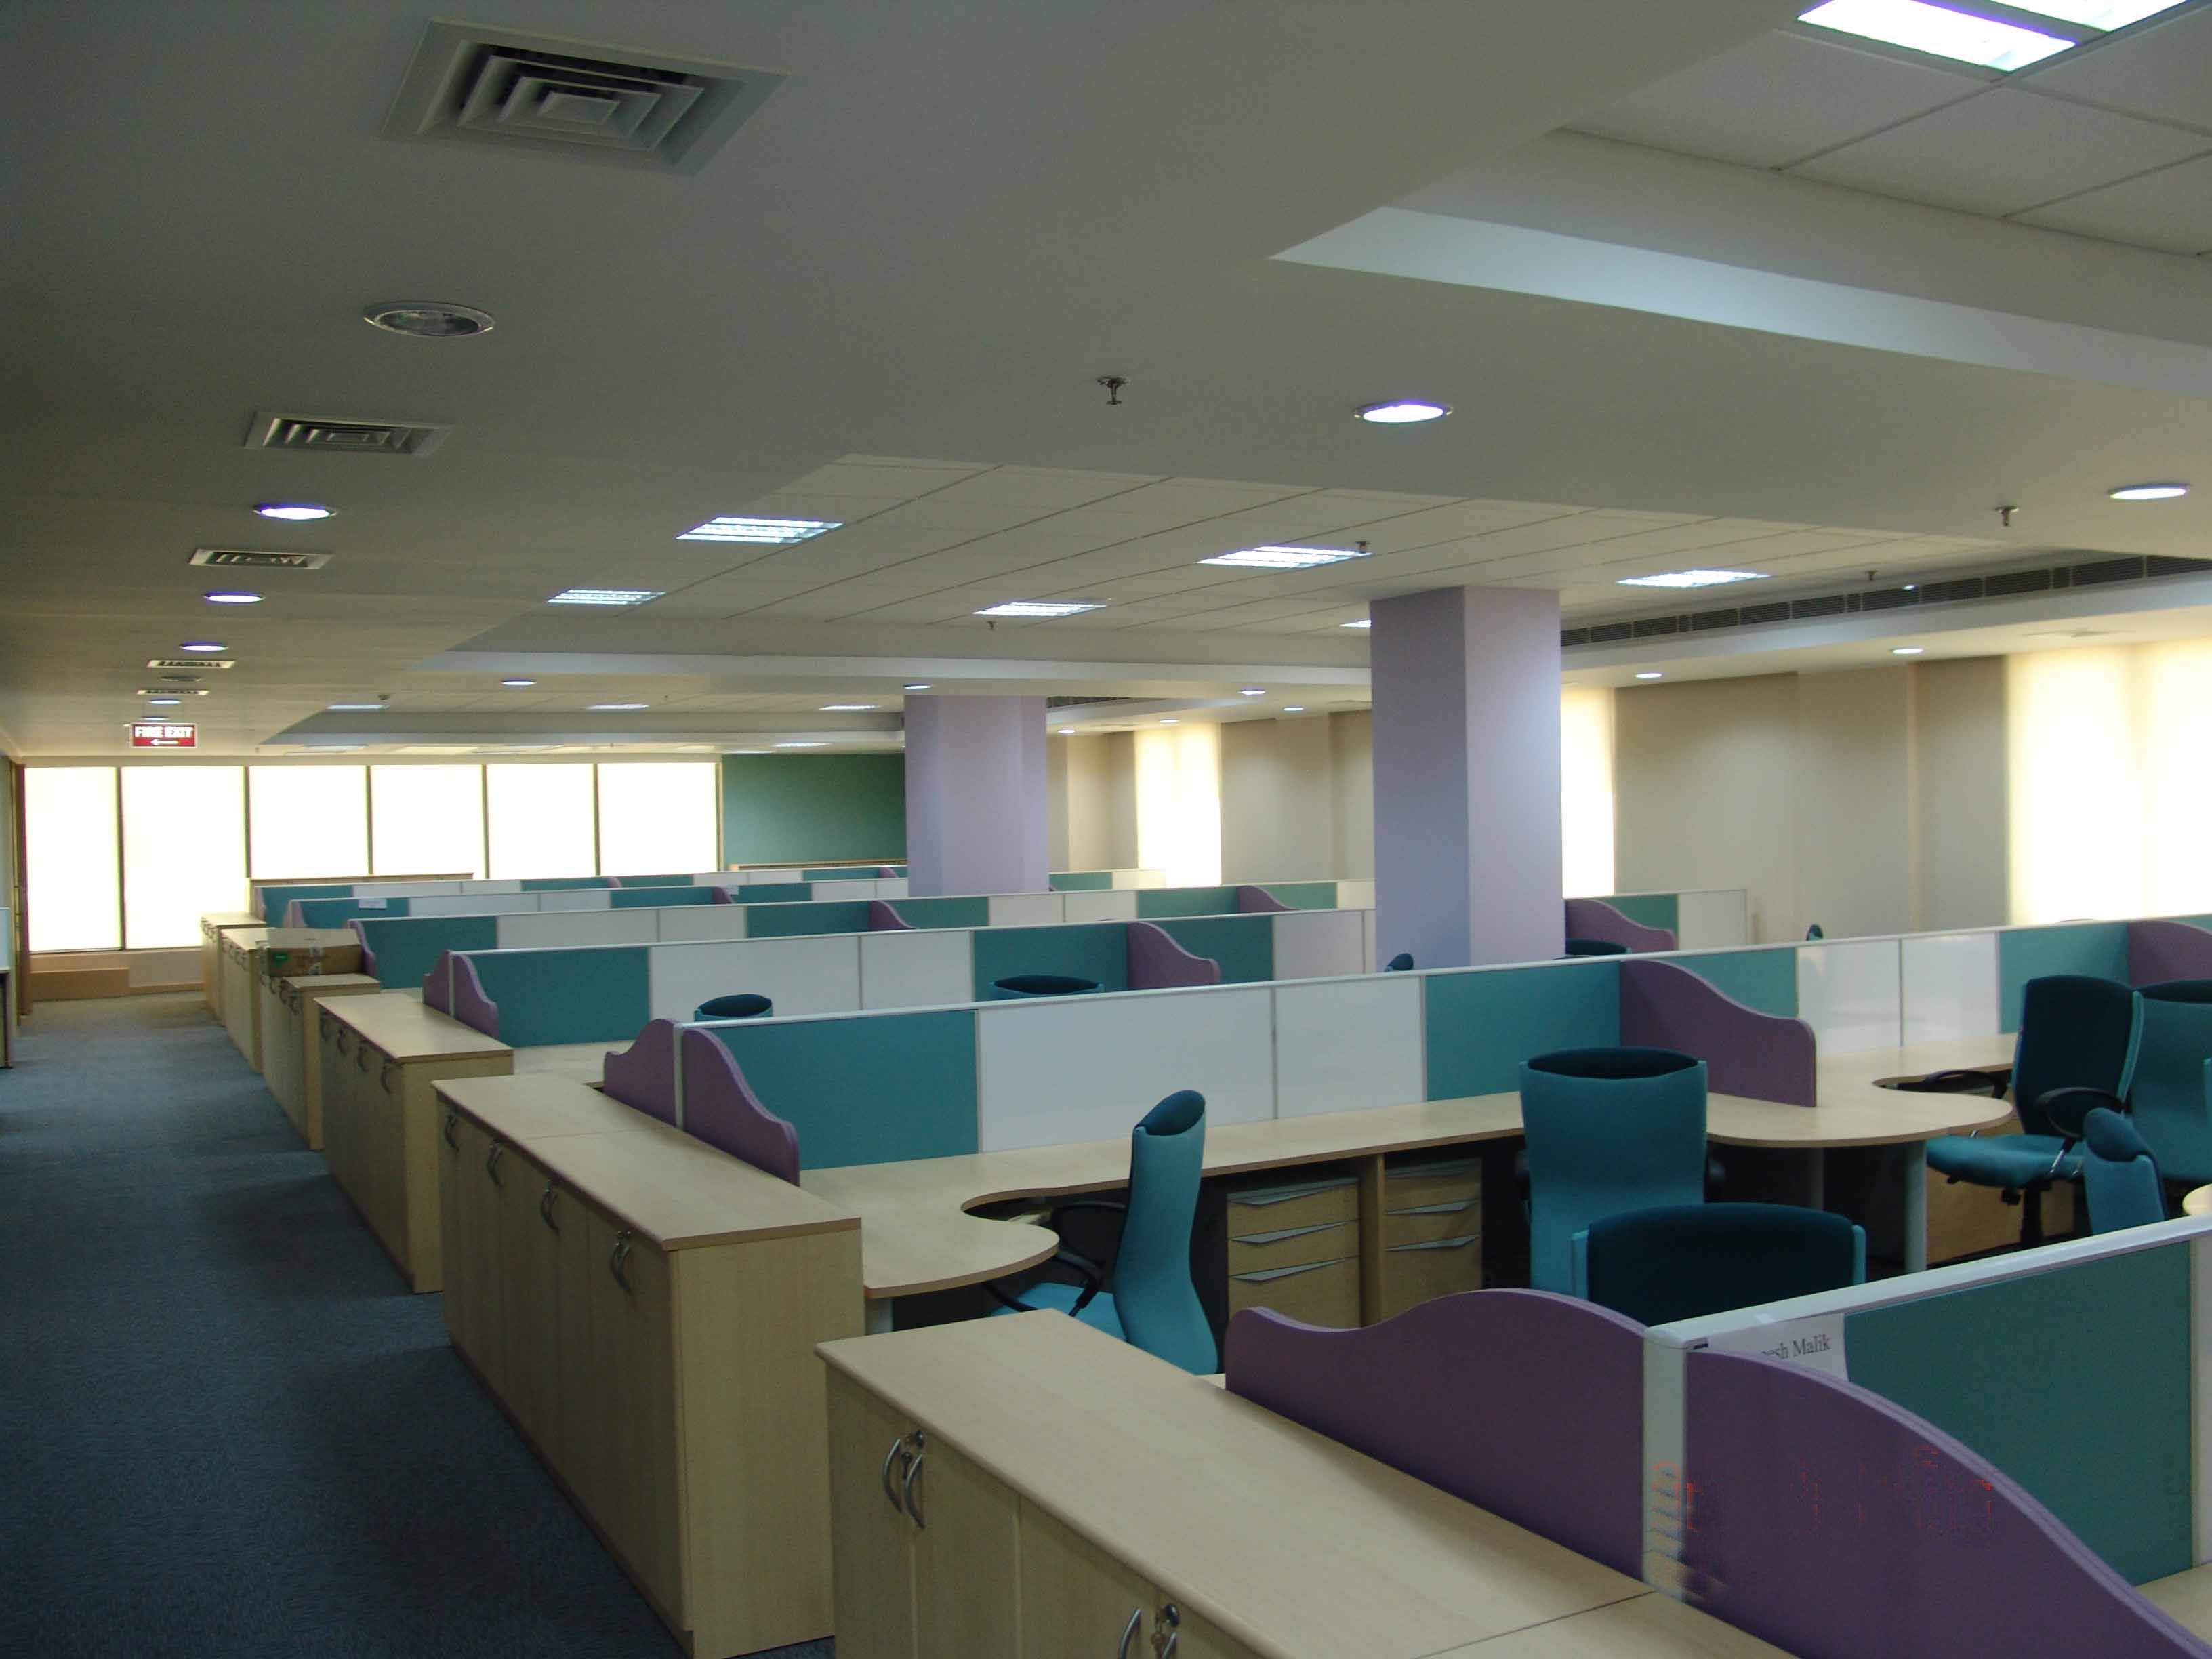 Office Space For Rent In Noida Sector 2 9910007460 Commercial Office Space Commercial Property For Rent Commercial Property For Sale